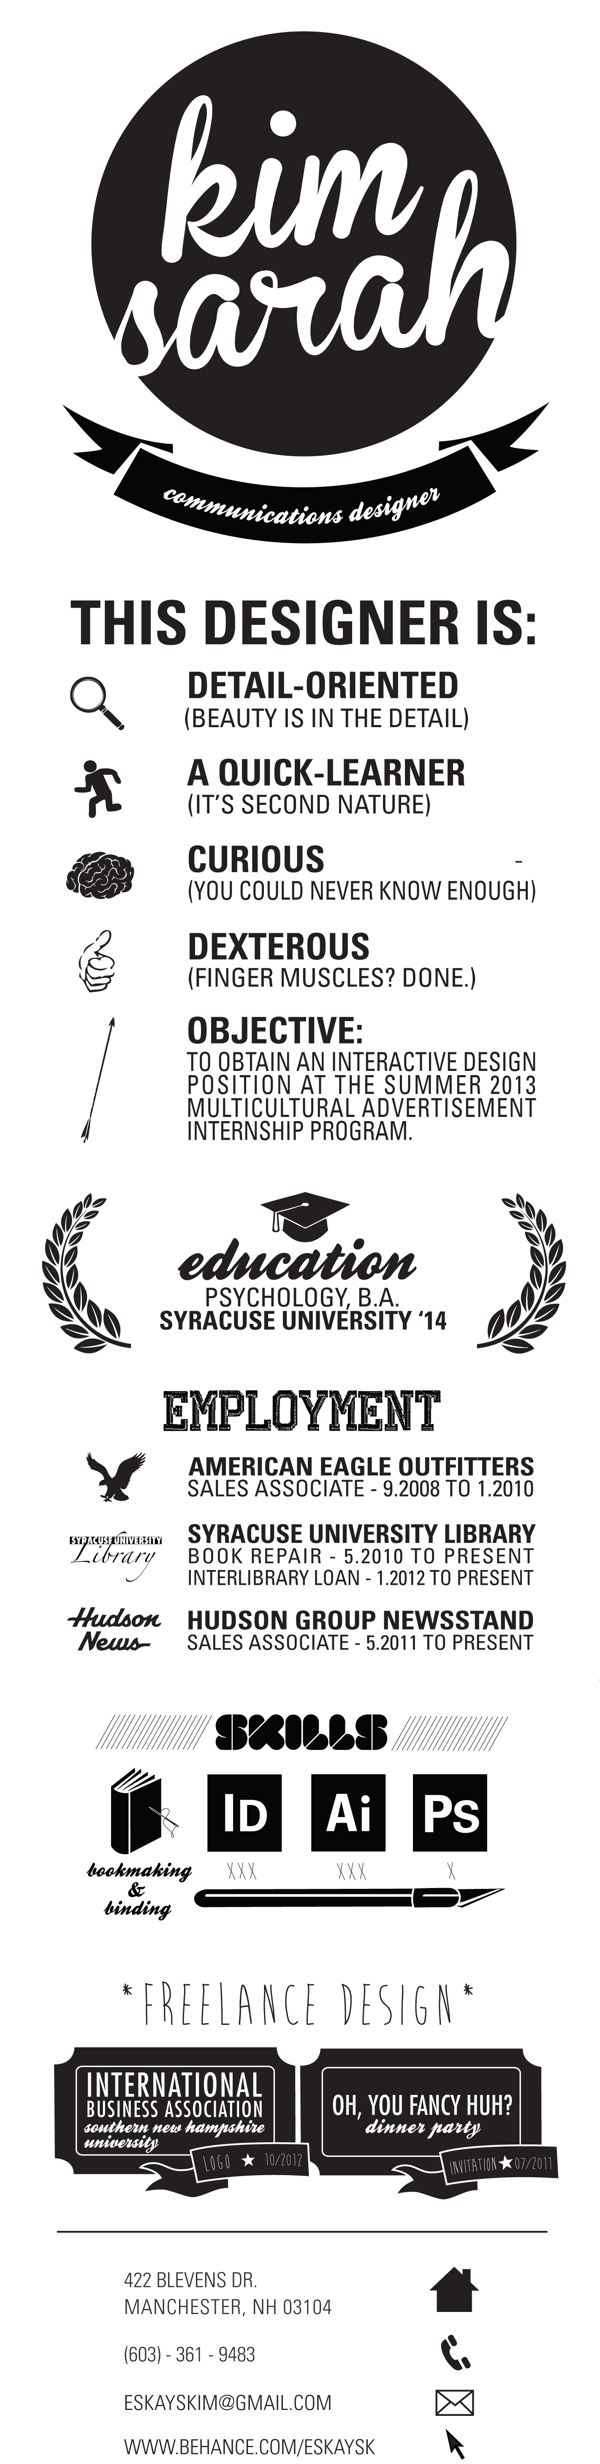 Opposenewapstandardsus  Winsome  Resume Ideas On Pinterest  Resume Resume Templates And  With Great  Resume Ideas On Pinterest  Resume Resume Templates And Resume Styles With Appealing Combination Resume Examples Also One Page Resume Examples In Addition Slp Resume And Is My Perfect Resume Free As Well As Office Skills Resume Additionally Updating Resume From Pinterestcom With Opposenewapstandardsus  Great  Resume Ideas On Pinterest  Resume Resume Templates And  With Appealing  Resume Ideas On Pinterest  Resume Resume Templates And Resume Styles And Winsome Combination Resume Examples Also One Page Resume Examples In Addition Slp Resume From Pinterestcom